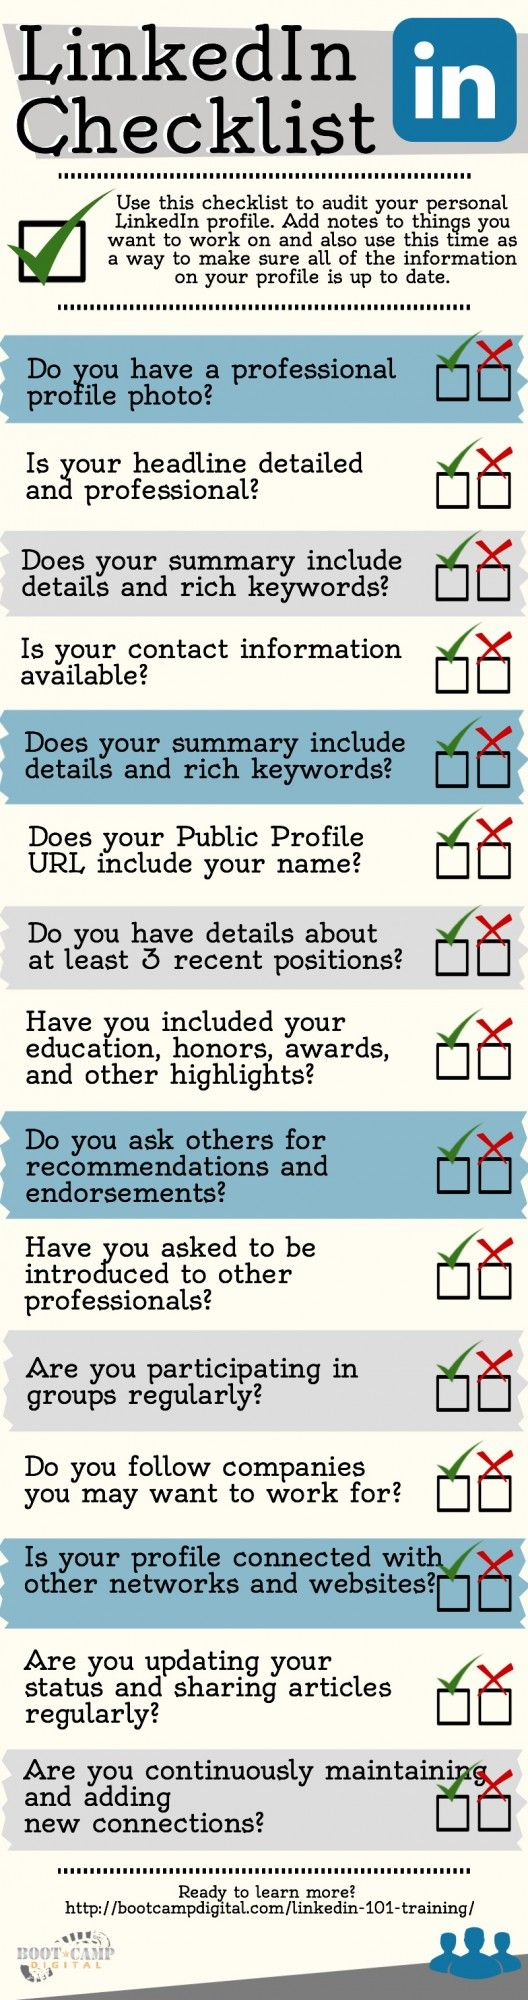 How can you optimise your LinkedIn profile?